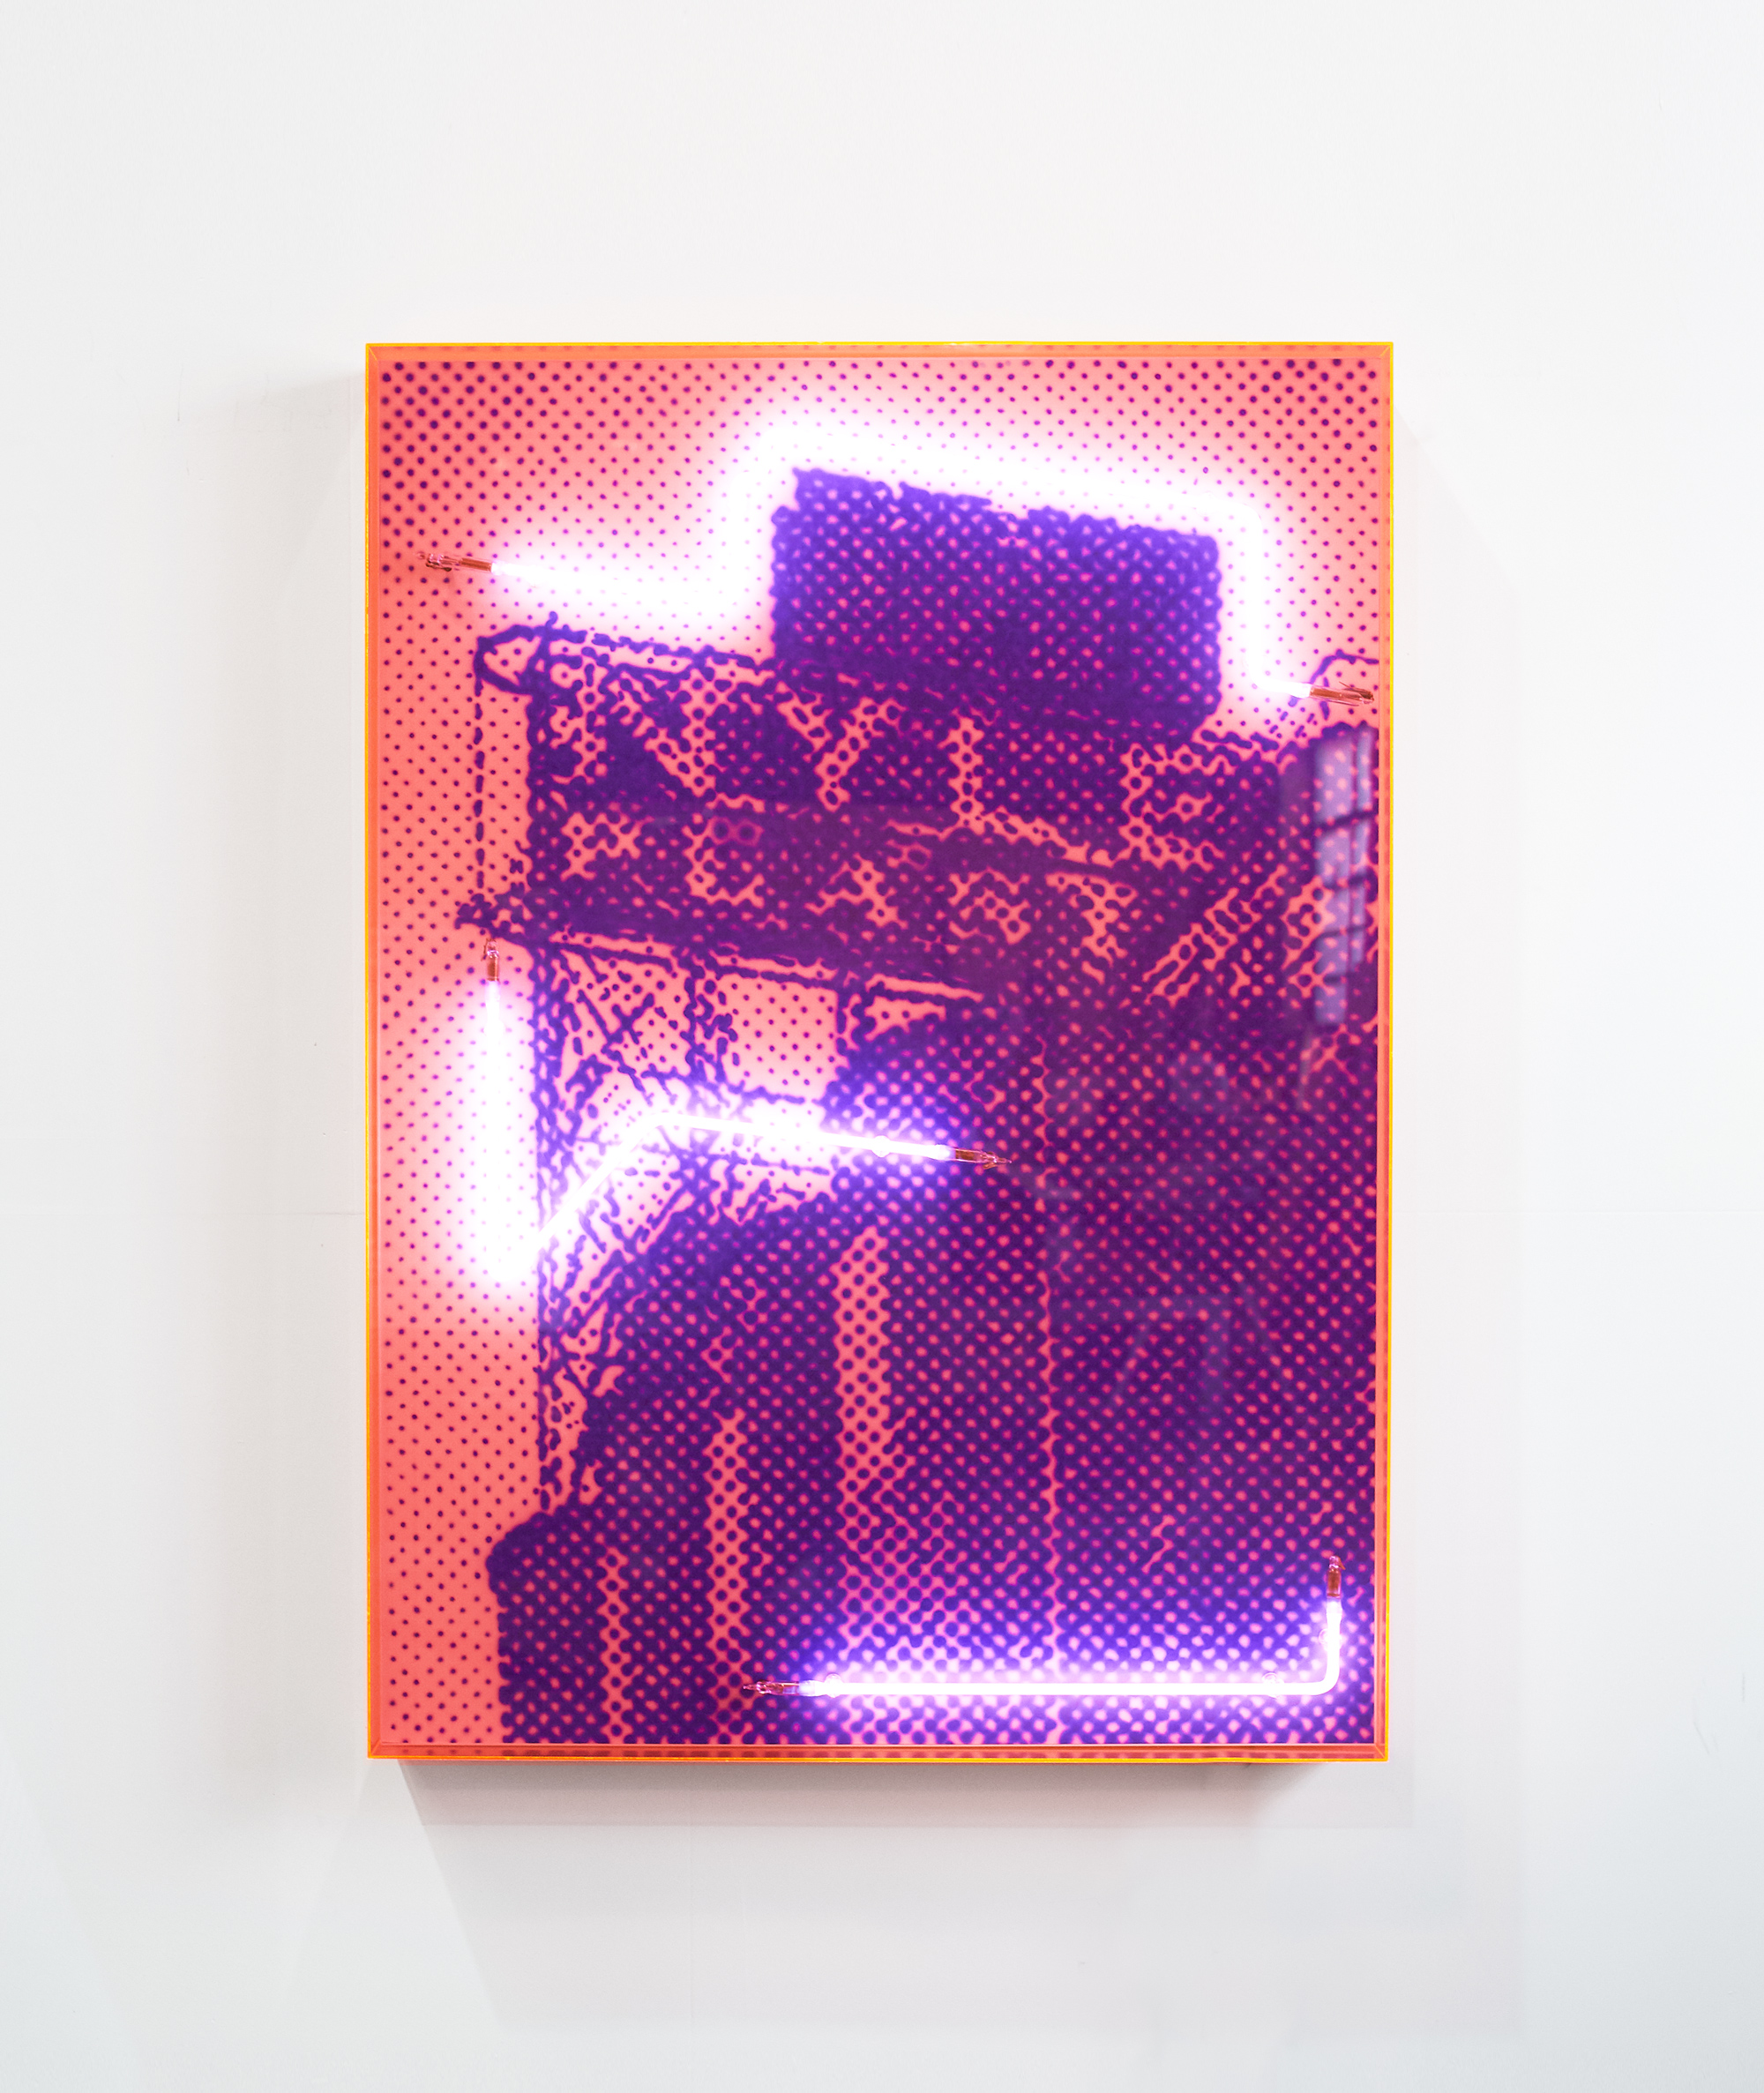 An industrial past with heritage architecture  Airbrush acrylic polymer and neon on dibond, pink acrylic frame 90x125cm